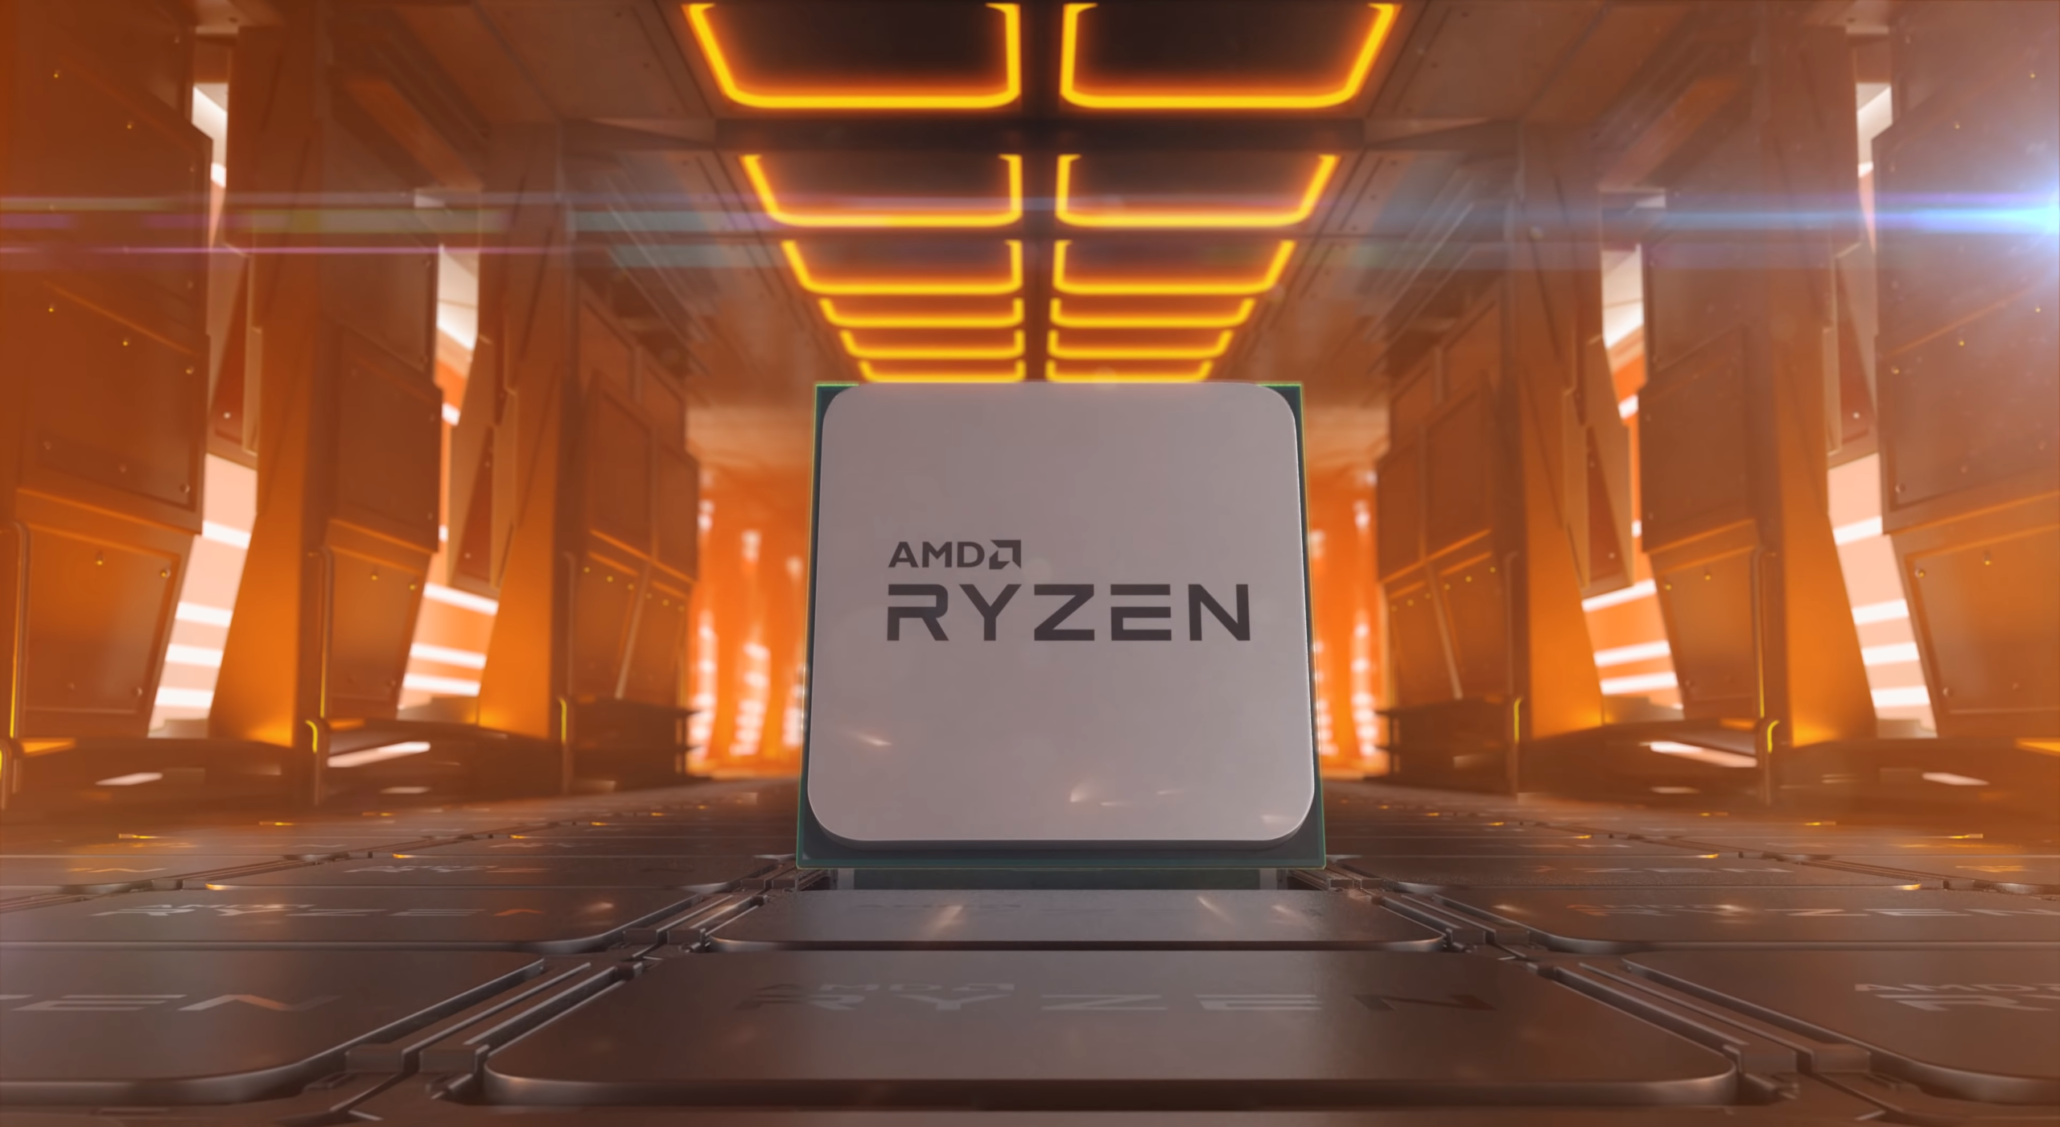 AMD Ryzen 7 3800X Benchmarks Leaked, Crushes Intel's i9 9900K